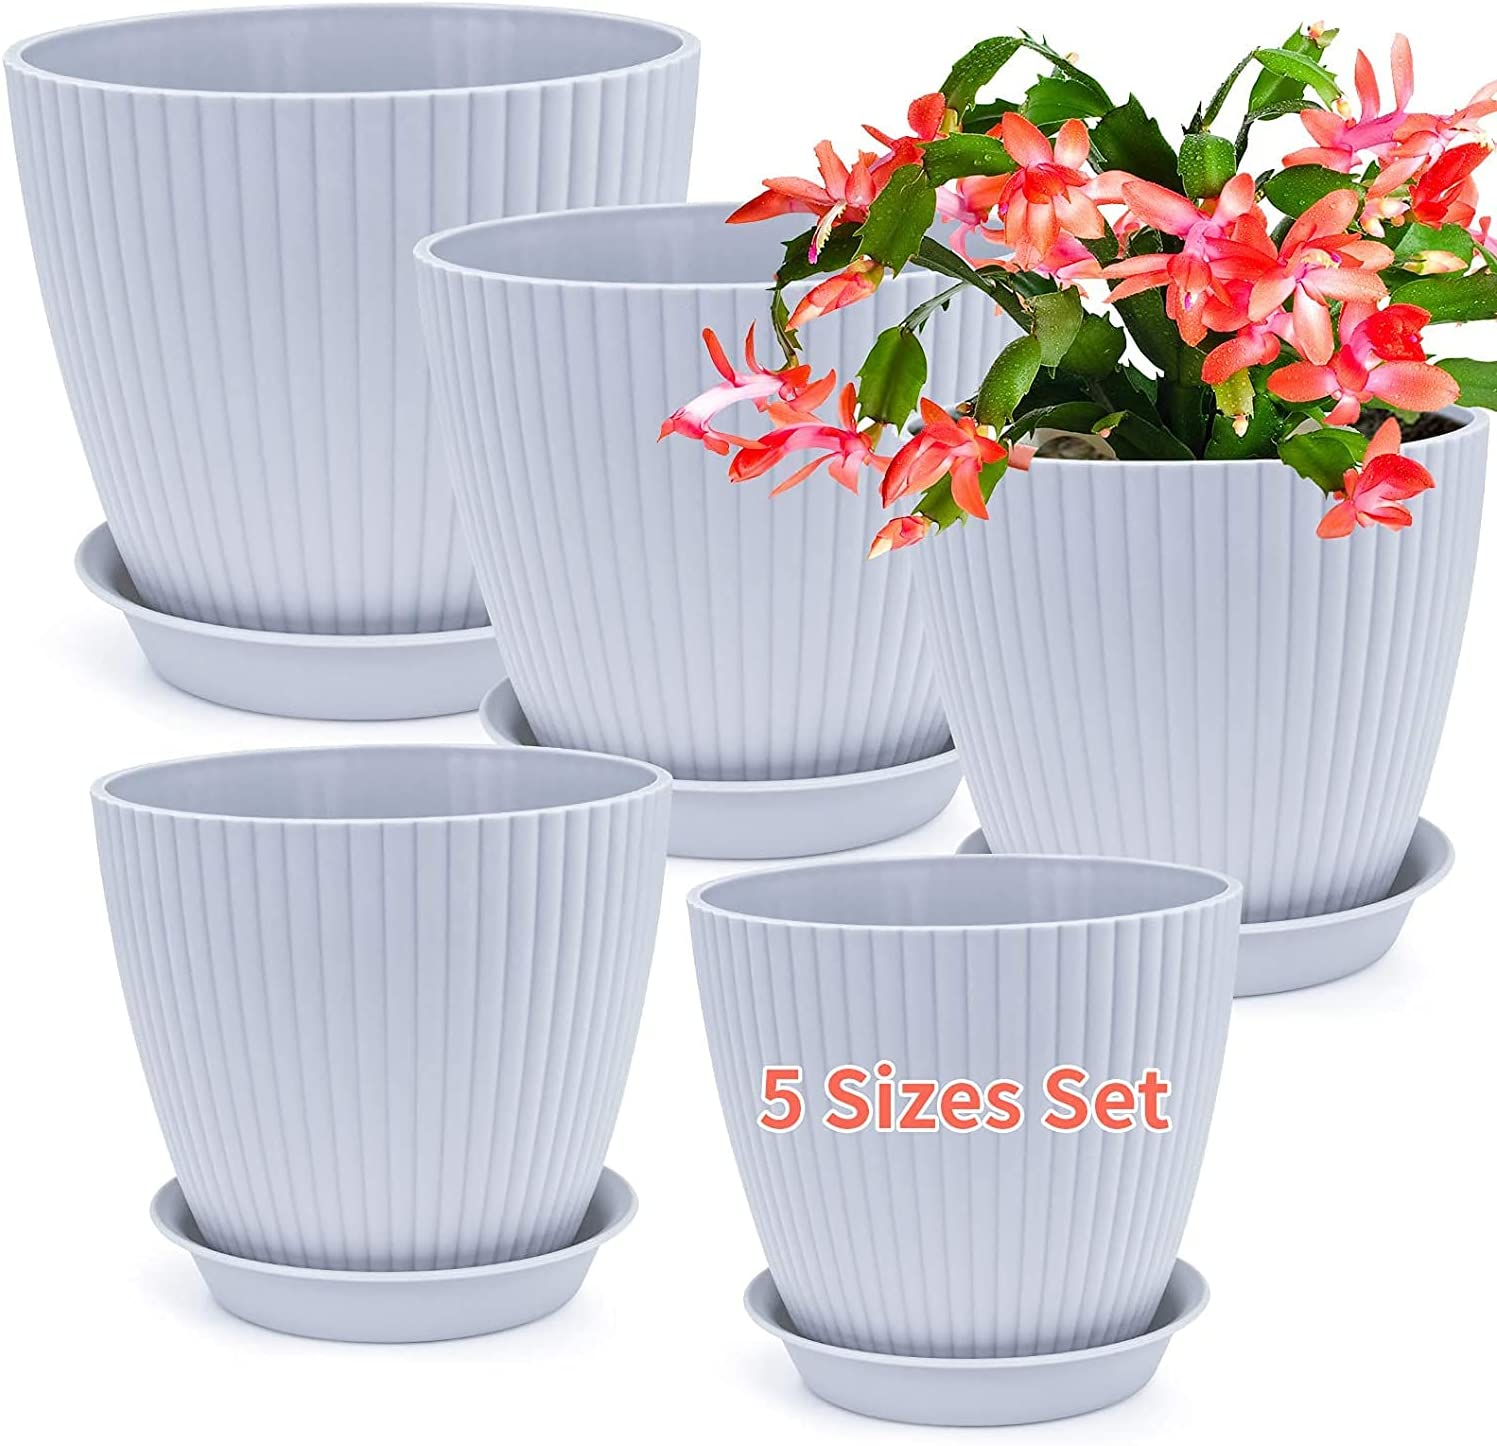 Plastic Plant Super popular specialty store outlet Pots 7.6 7 6.2 5.4 Garde 5 Inch and Indoor Outdoor